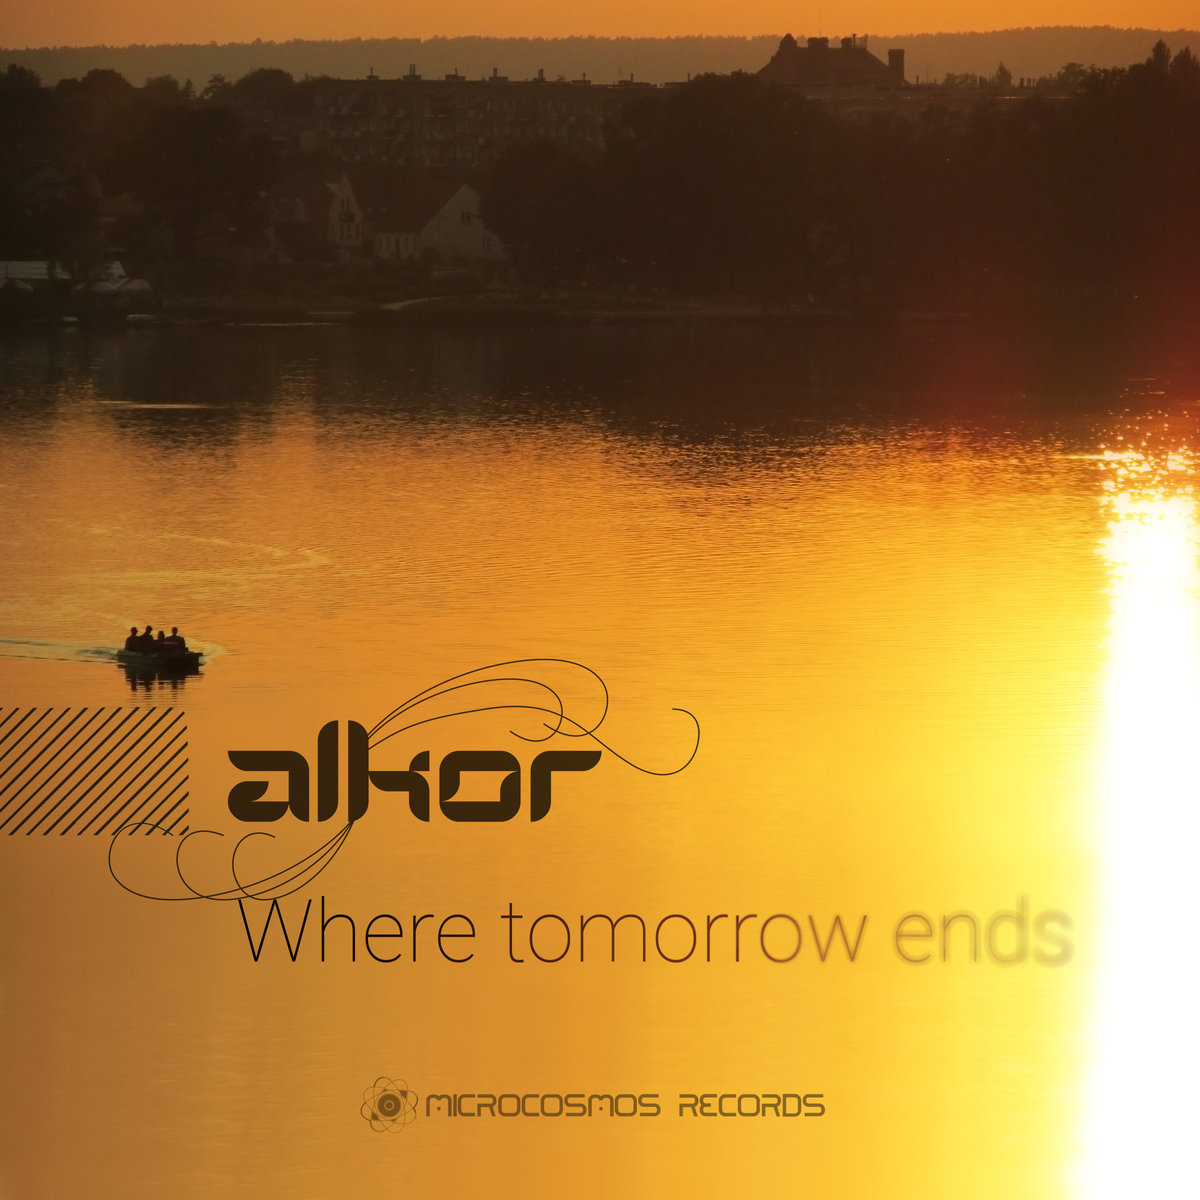 Alkor - The Swell @ 'Where Tomorrow Ends' album (ambient, chill-out)